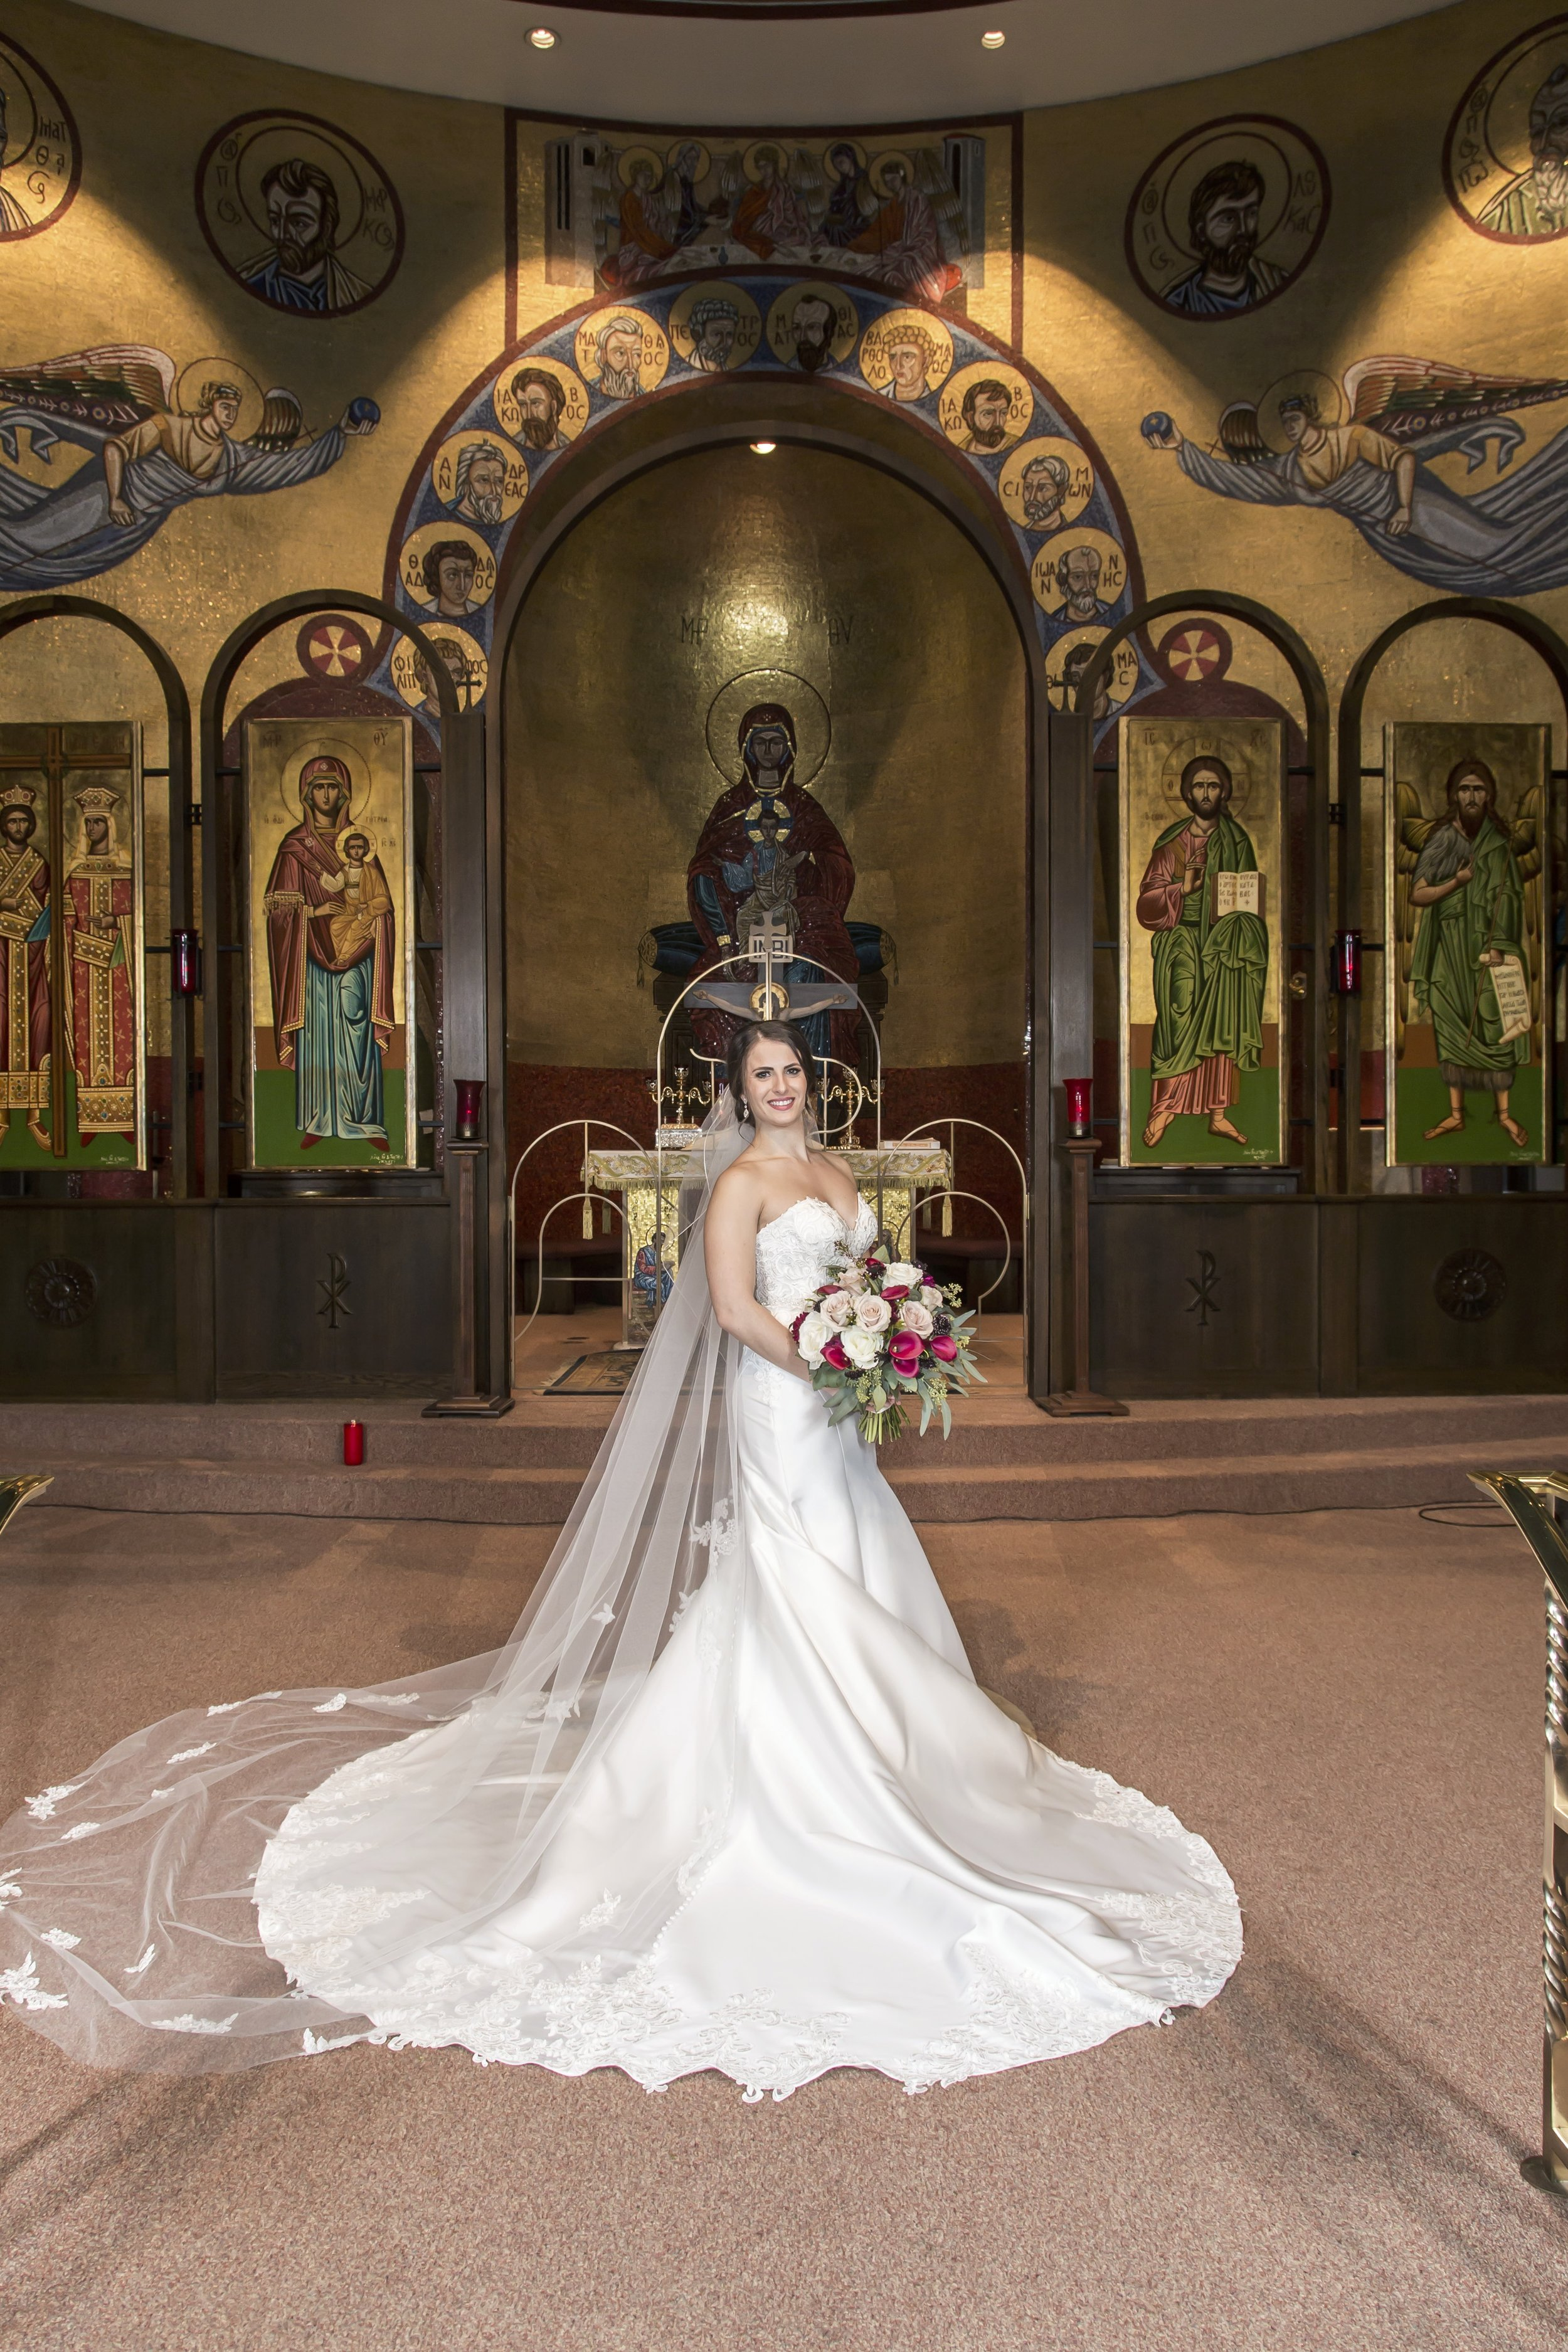 {Photos by: Timothy Whaley & Associates}